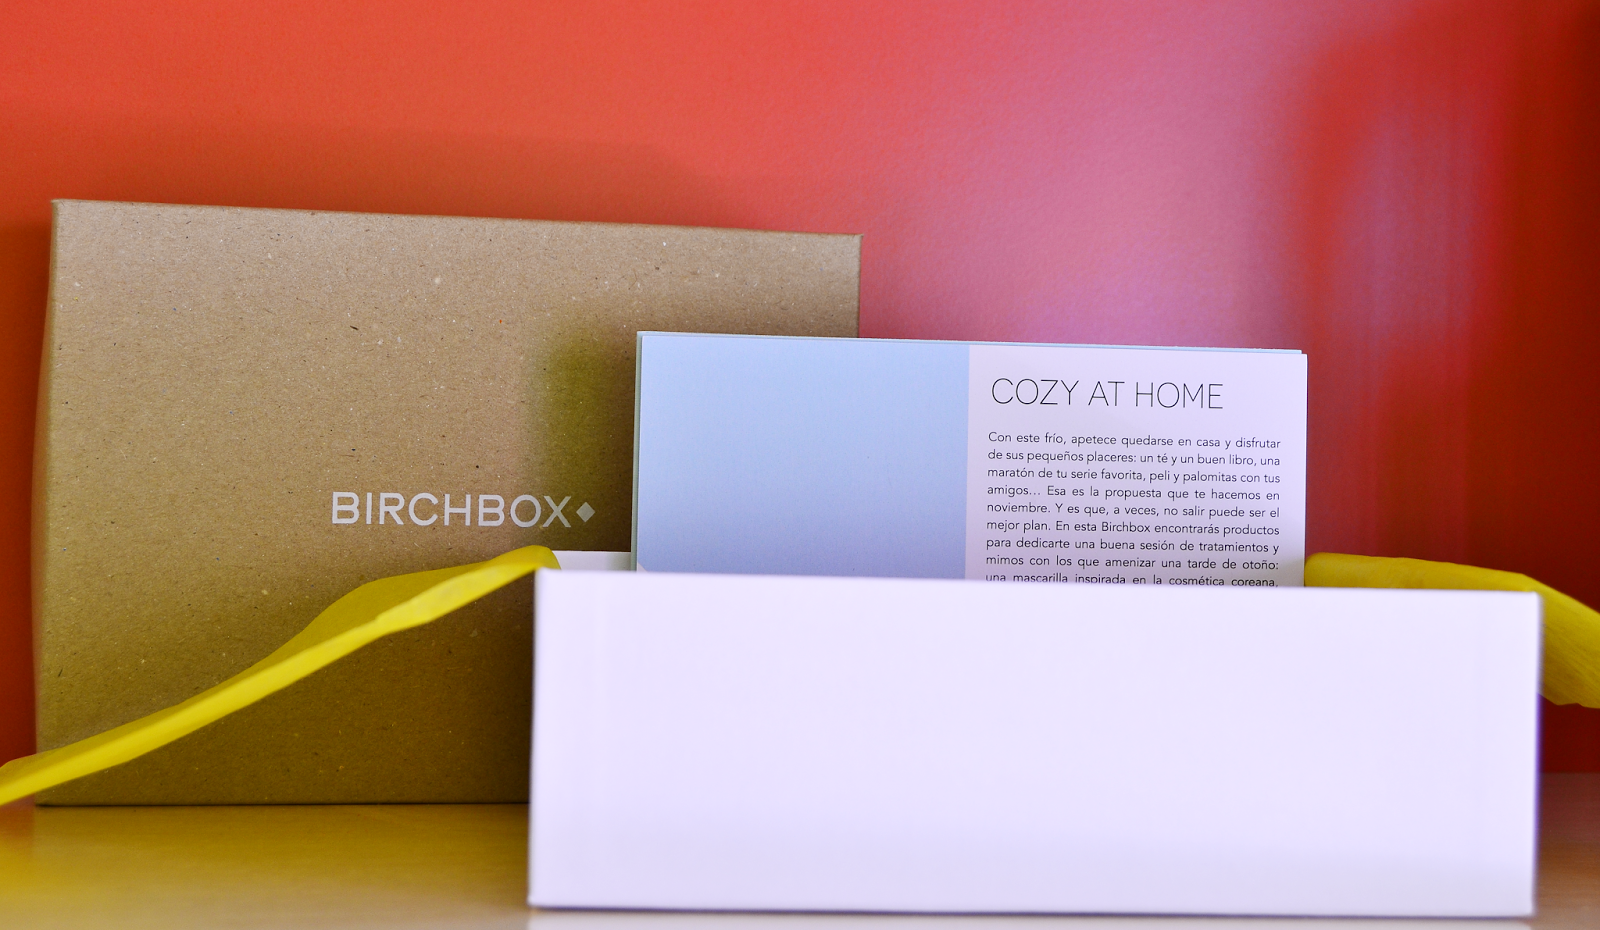 Birchbox Cozy at home